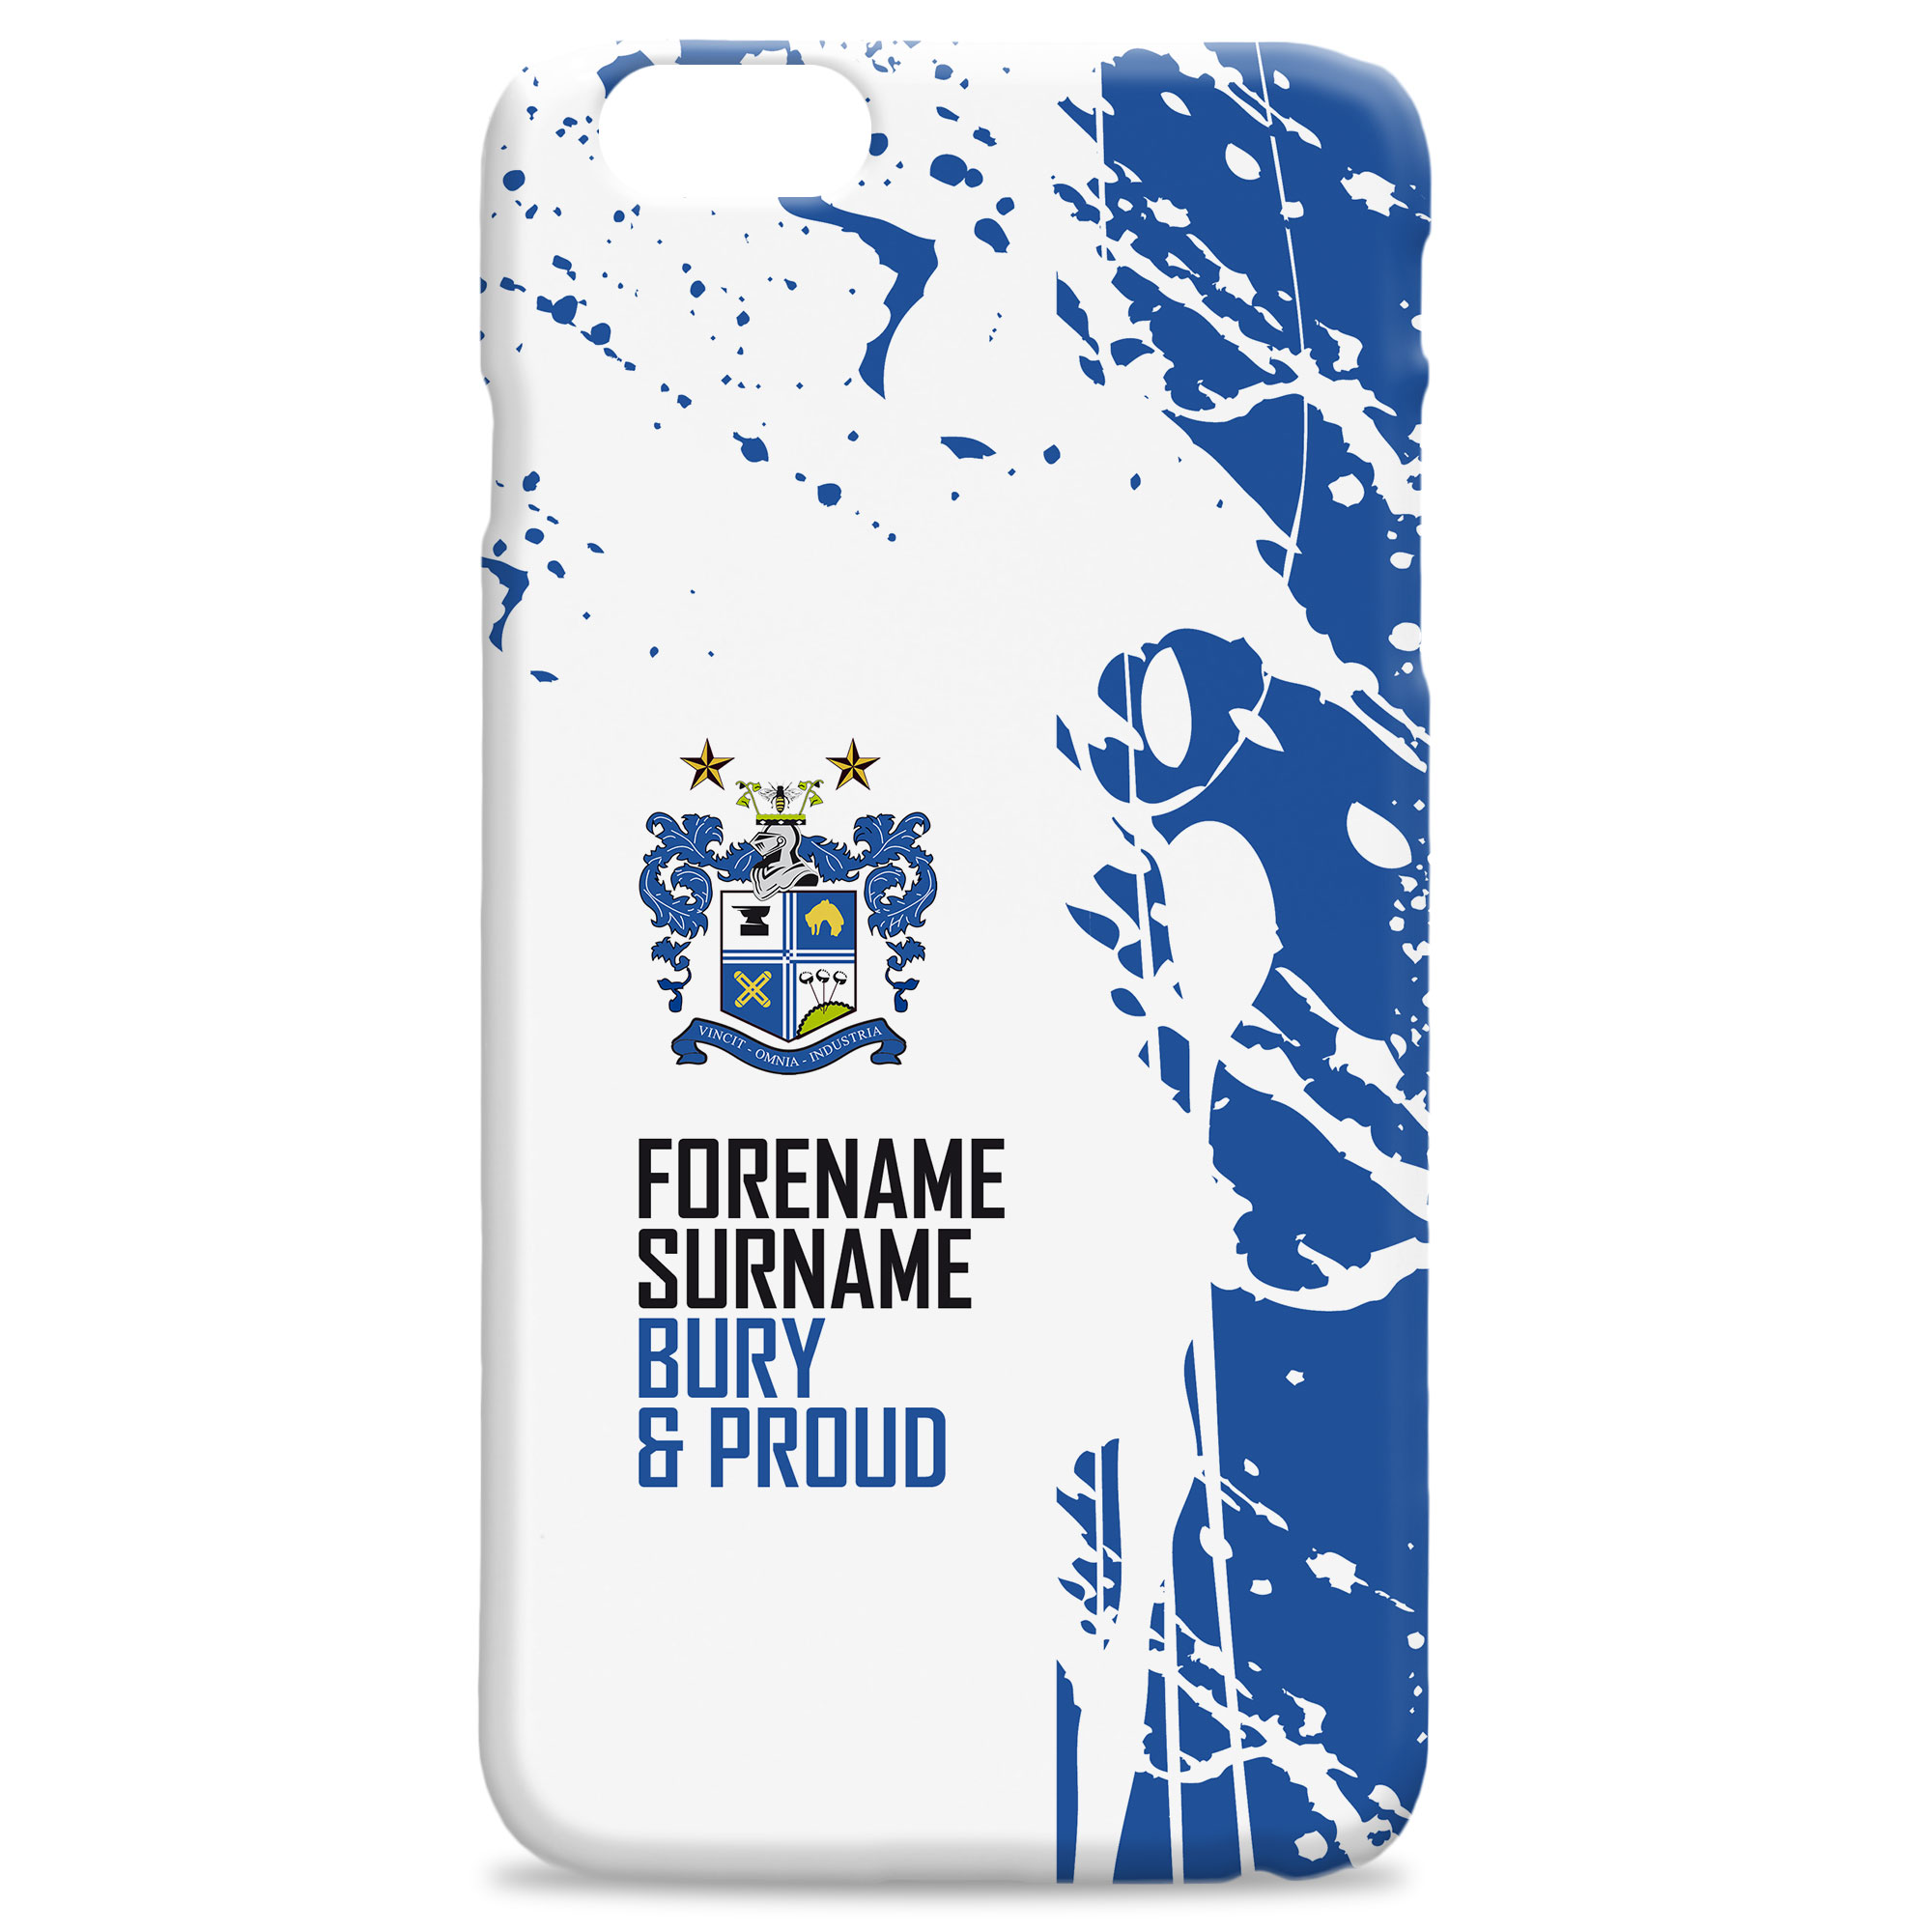 Bury FC Proud Hard Back Phone Case